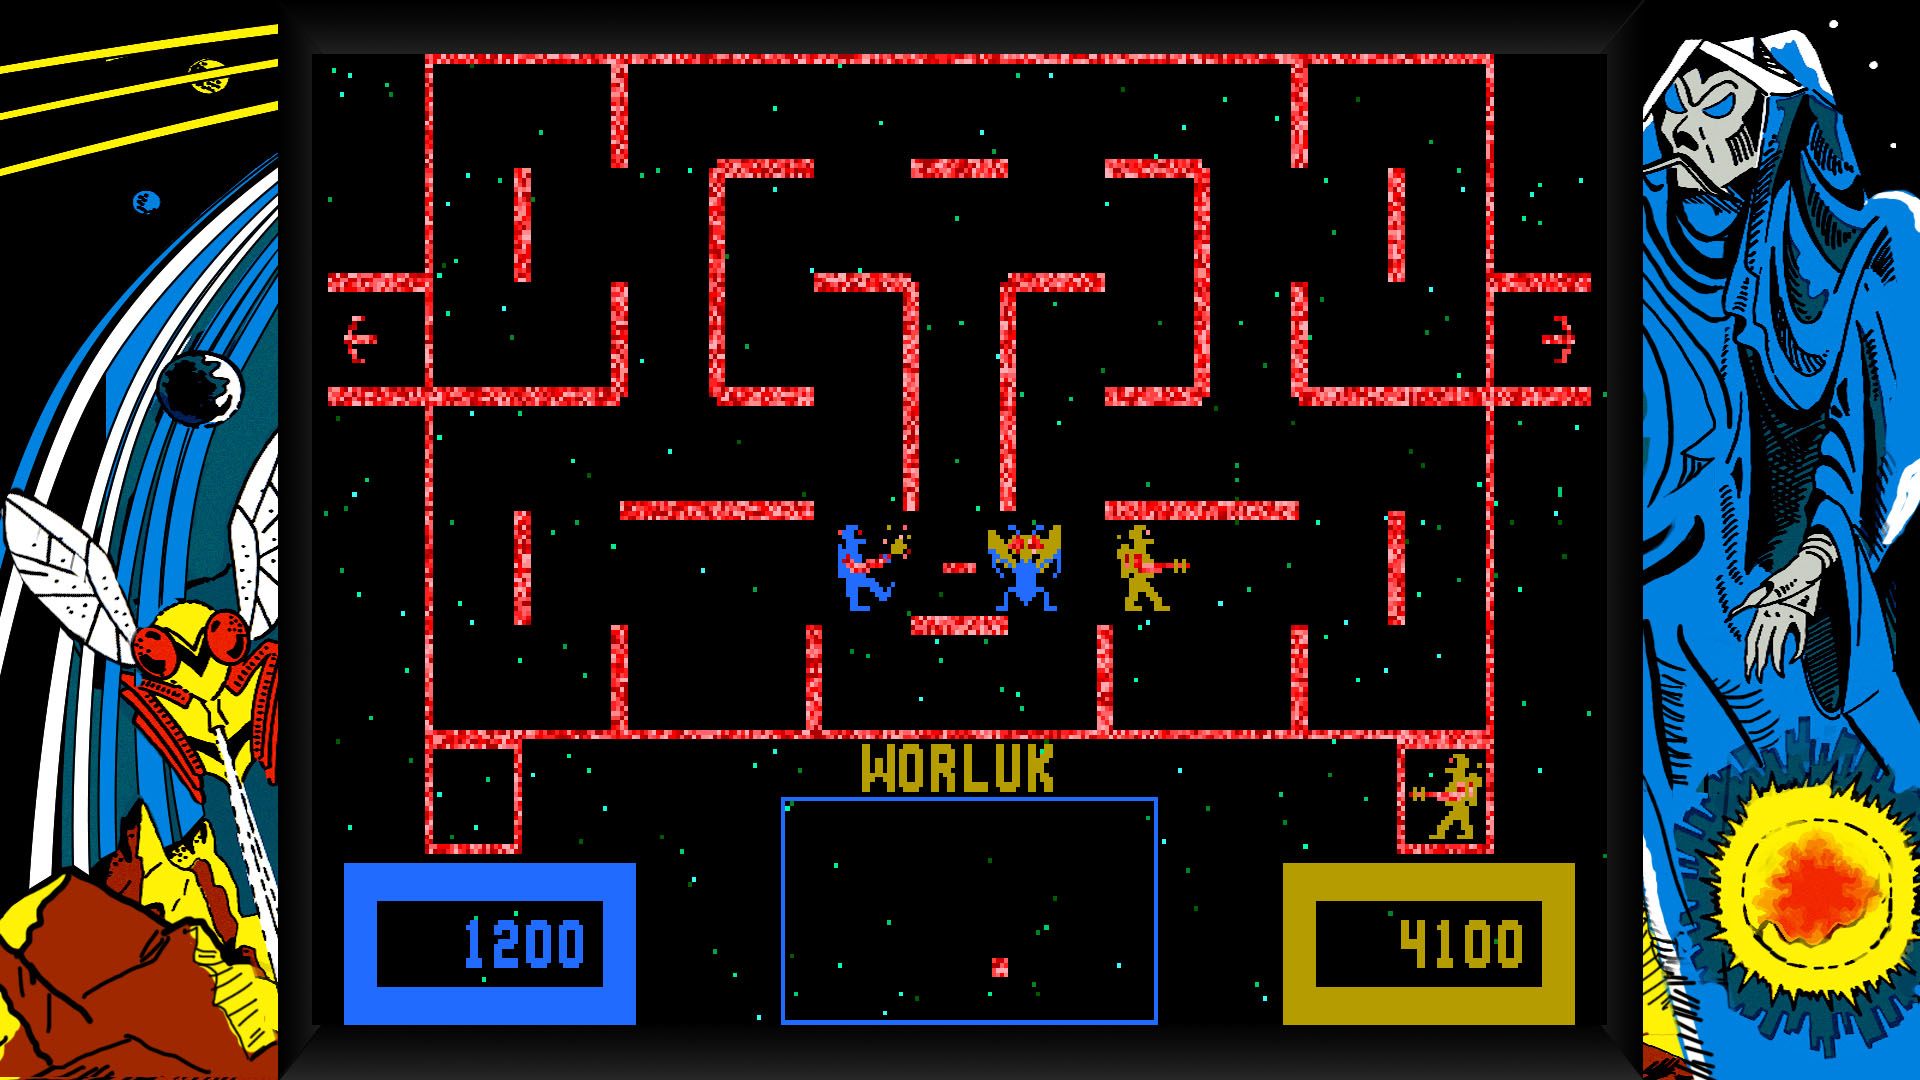 Retro Arcade Wallpaper Retro fans will likely have 1920x1080